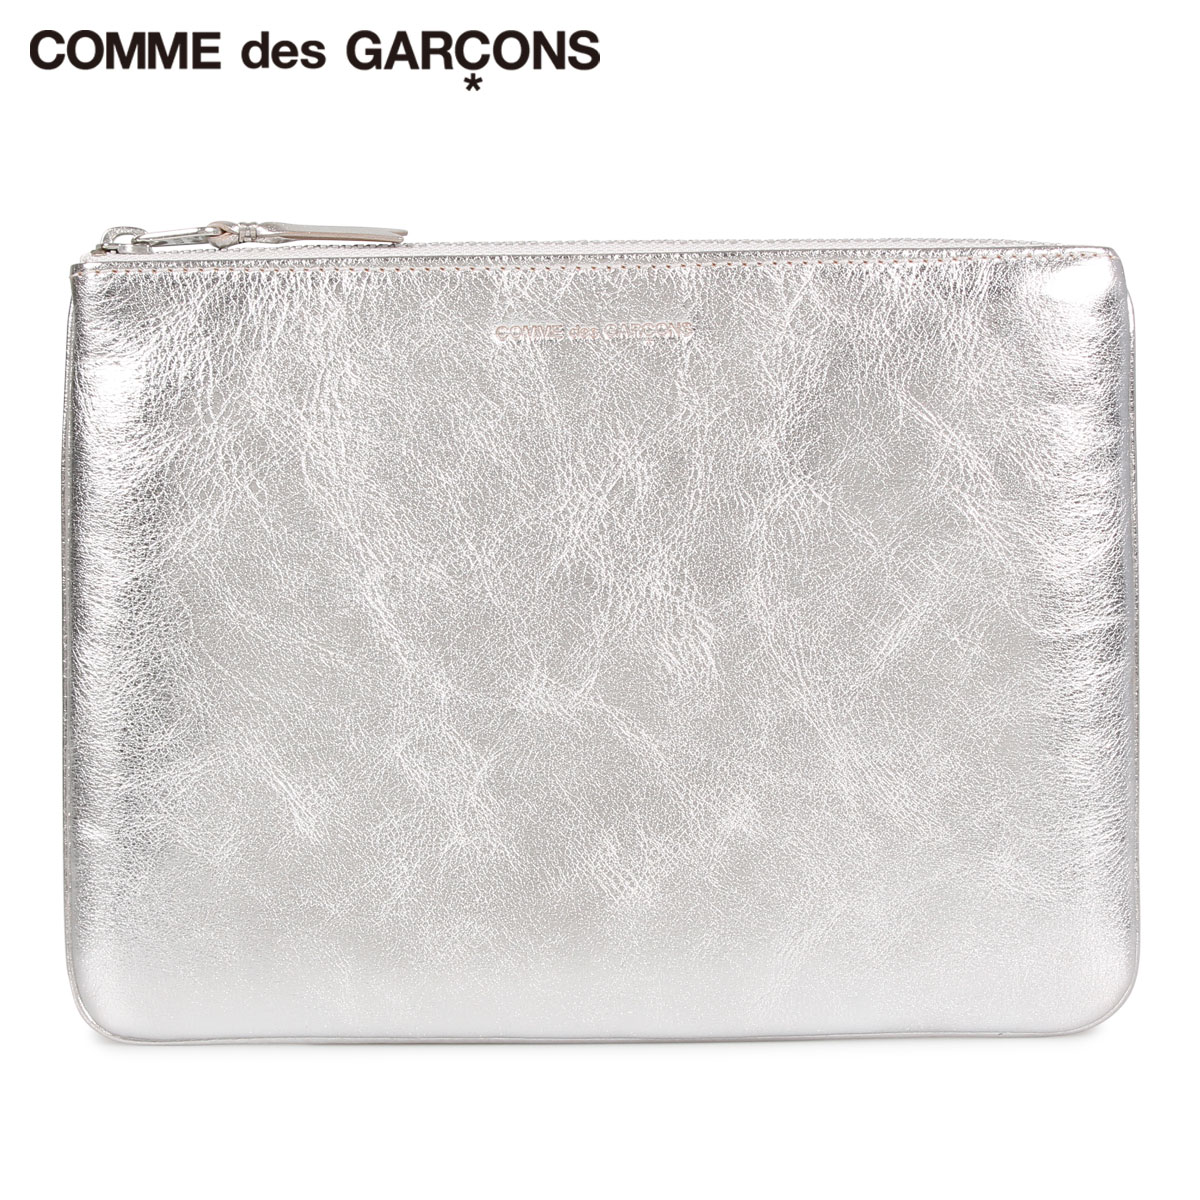 COMME des GARCONS GOLD AND SILVER COIN CASE コムデギャルソン 財布 小銭入れ コインケース メンズ レディース 本革 シルバー SA5100G